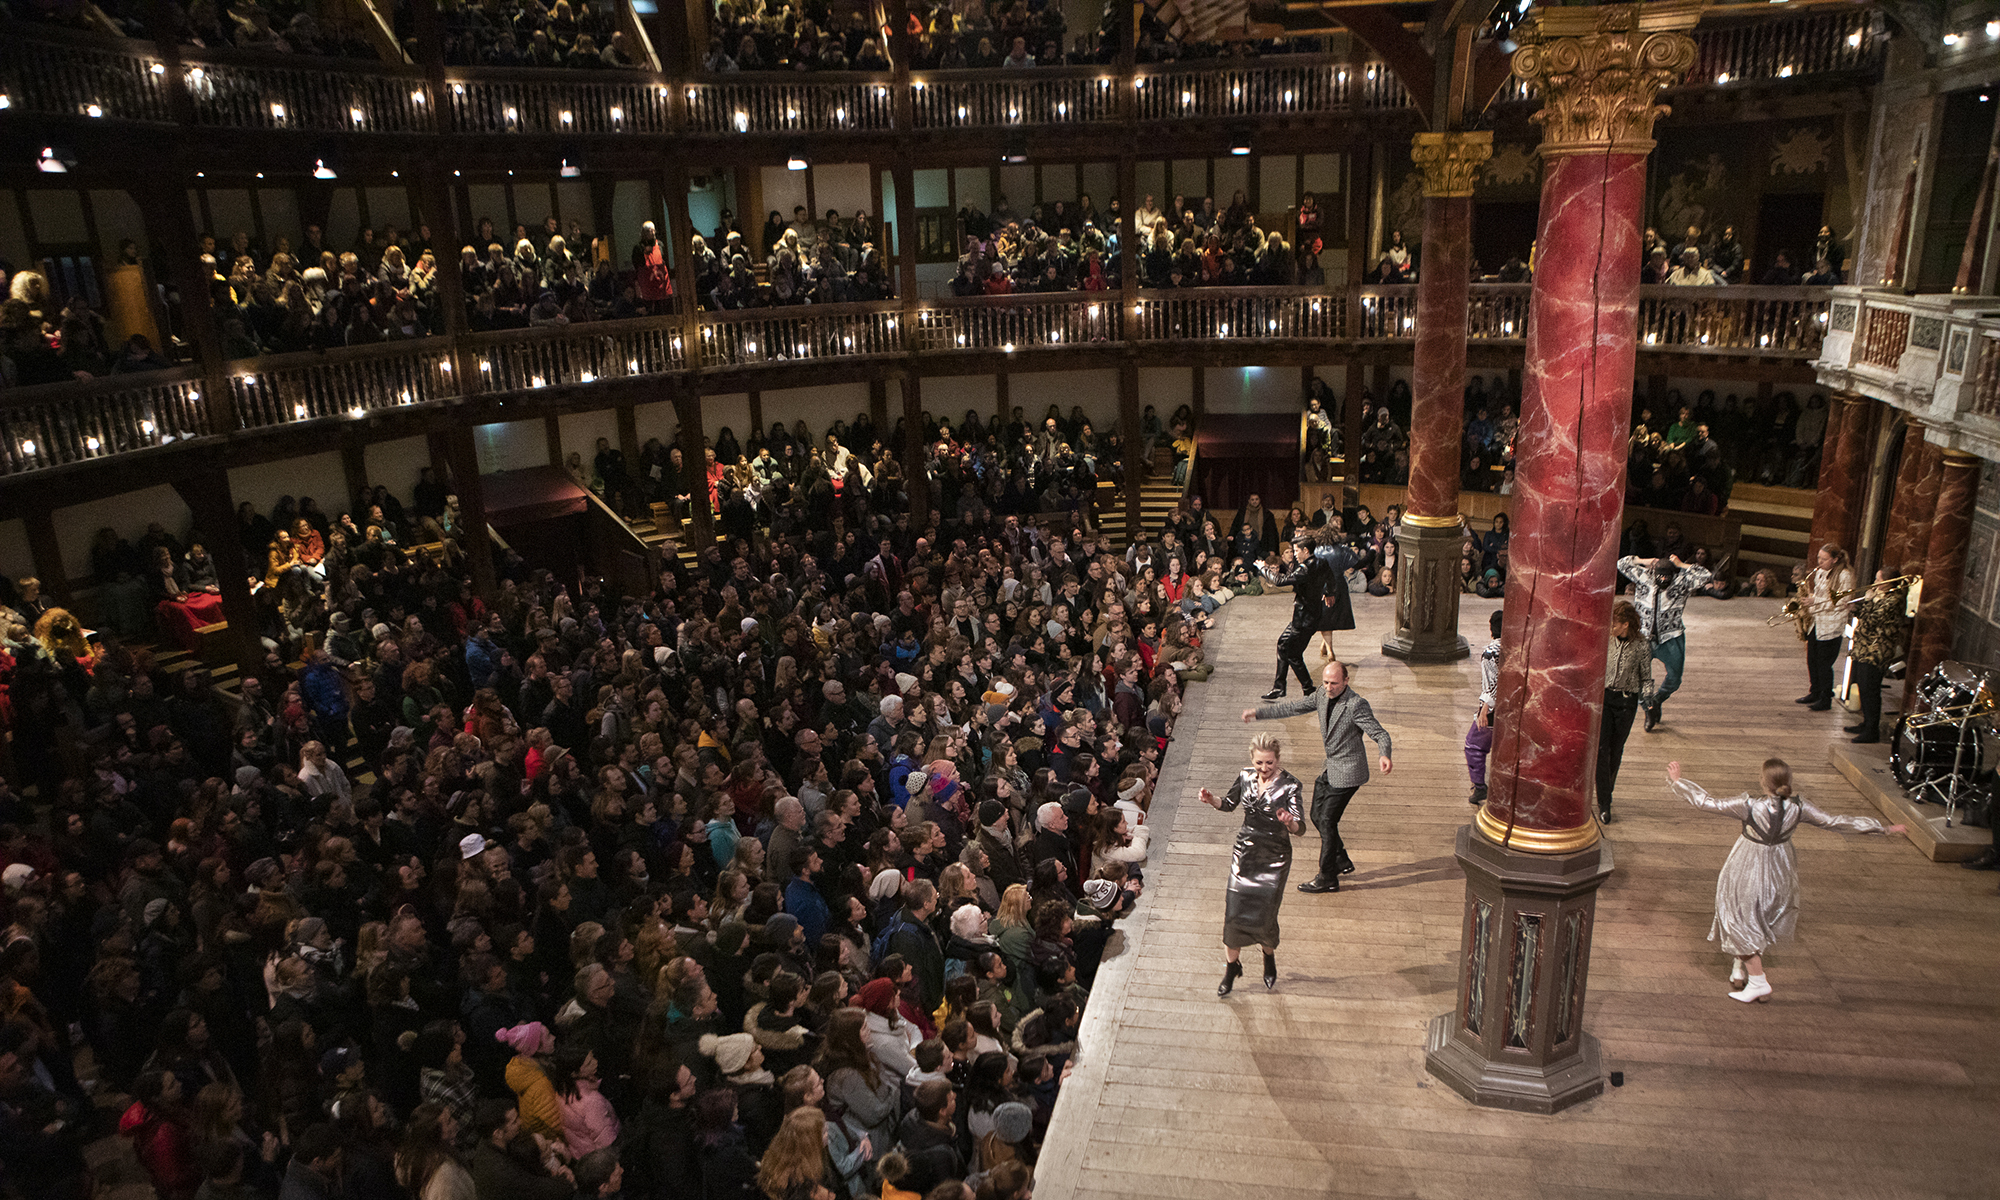 Actors dance on a wooden thrust stage, whilst a sea of audience members stand and watch.